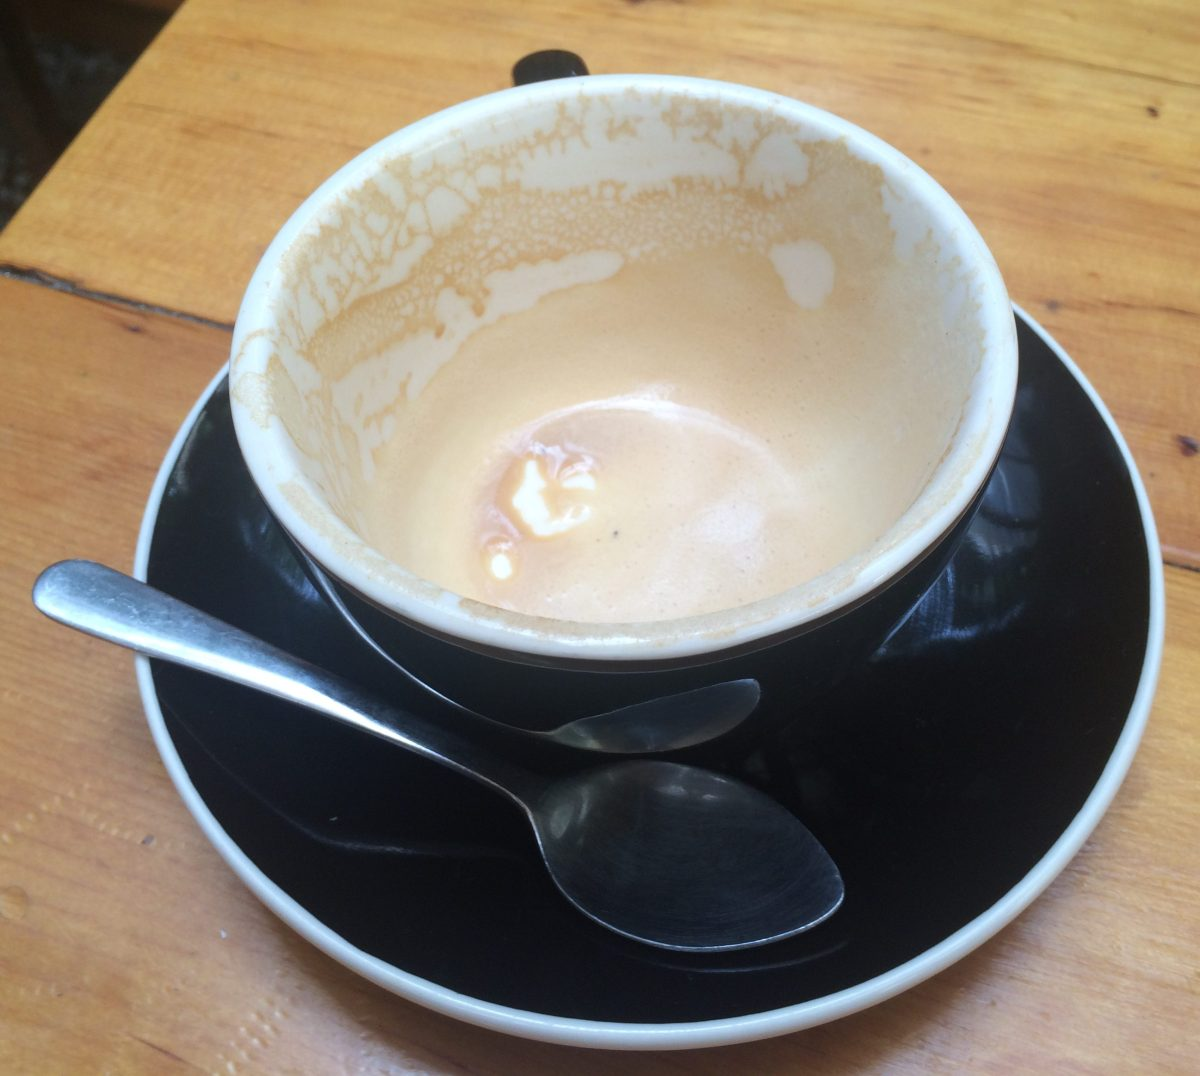 Residual cappuccino foam left from a Daily Press cappuccino.